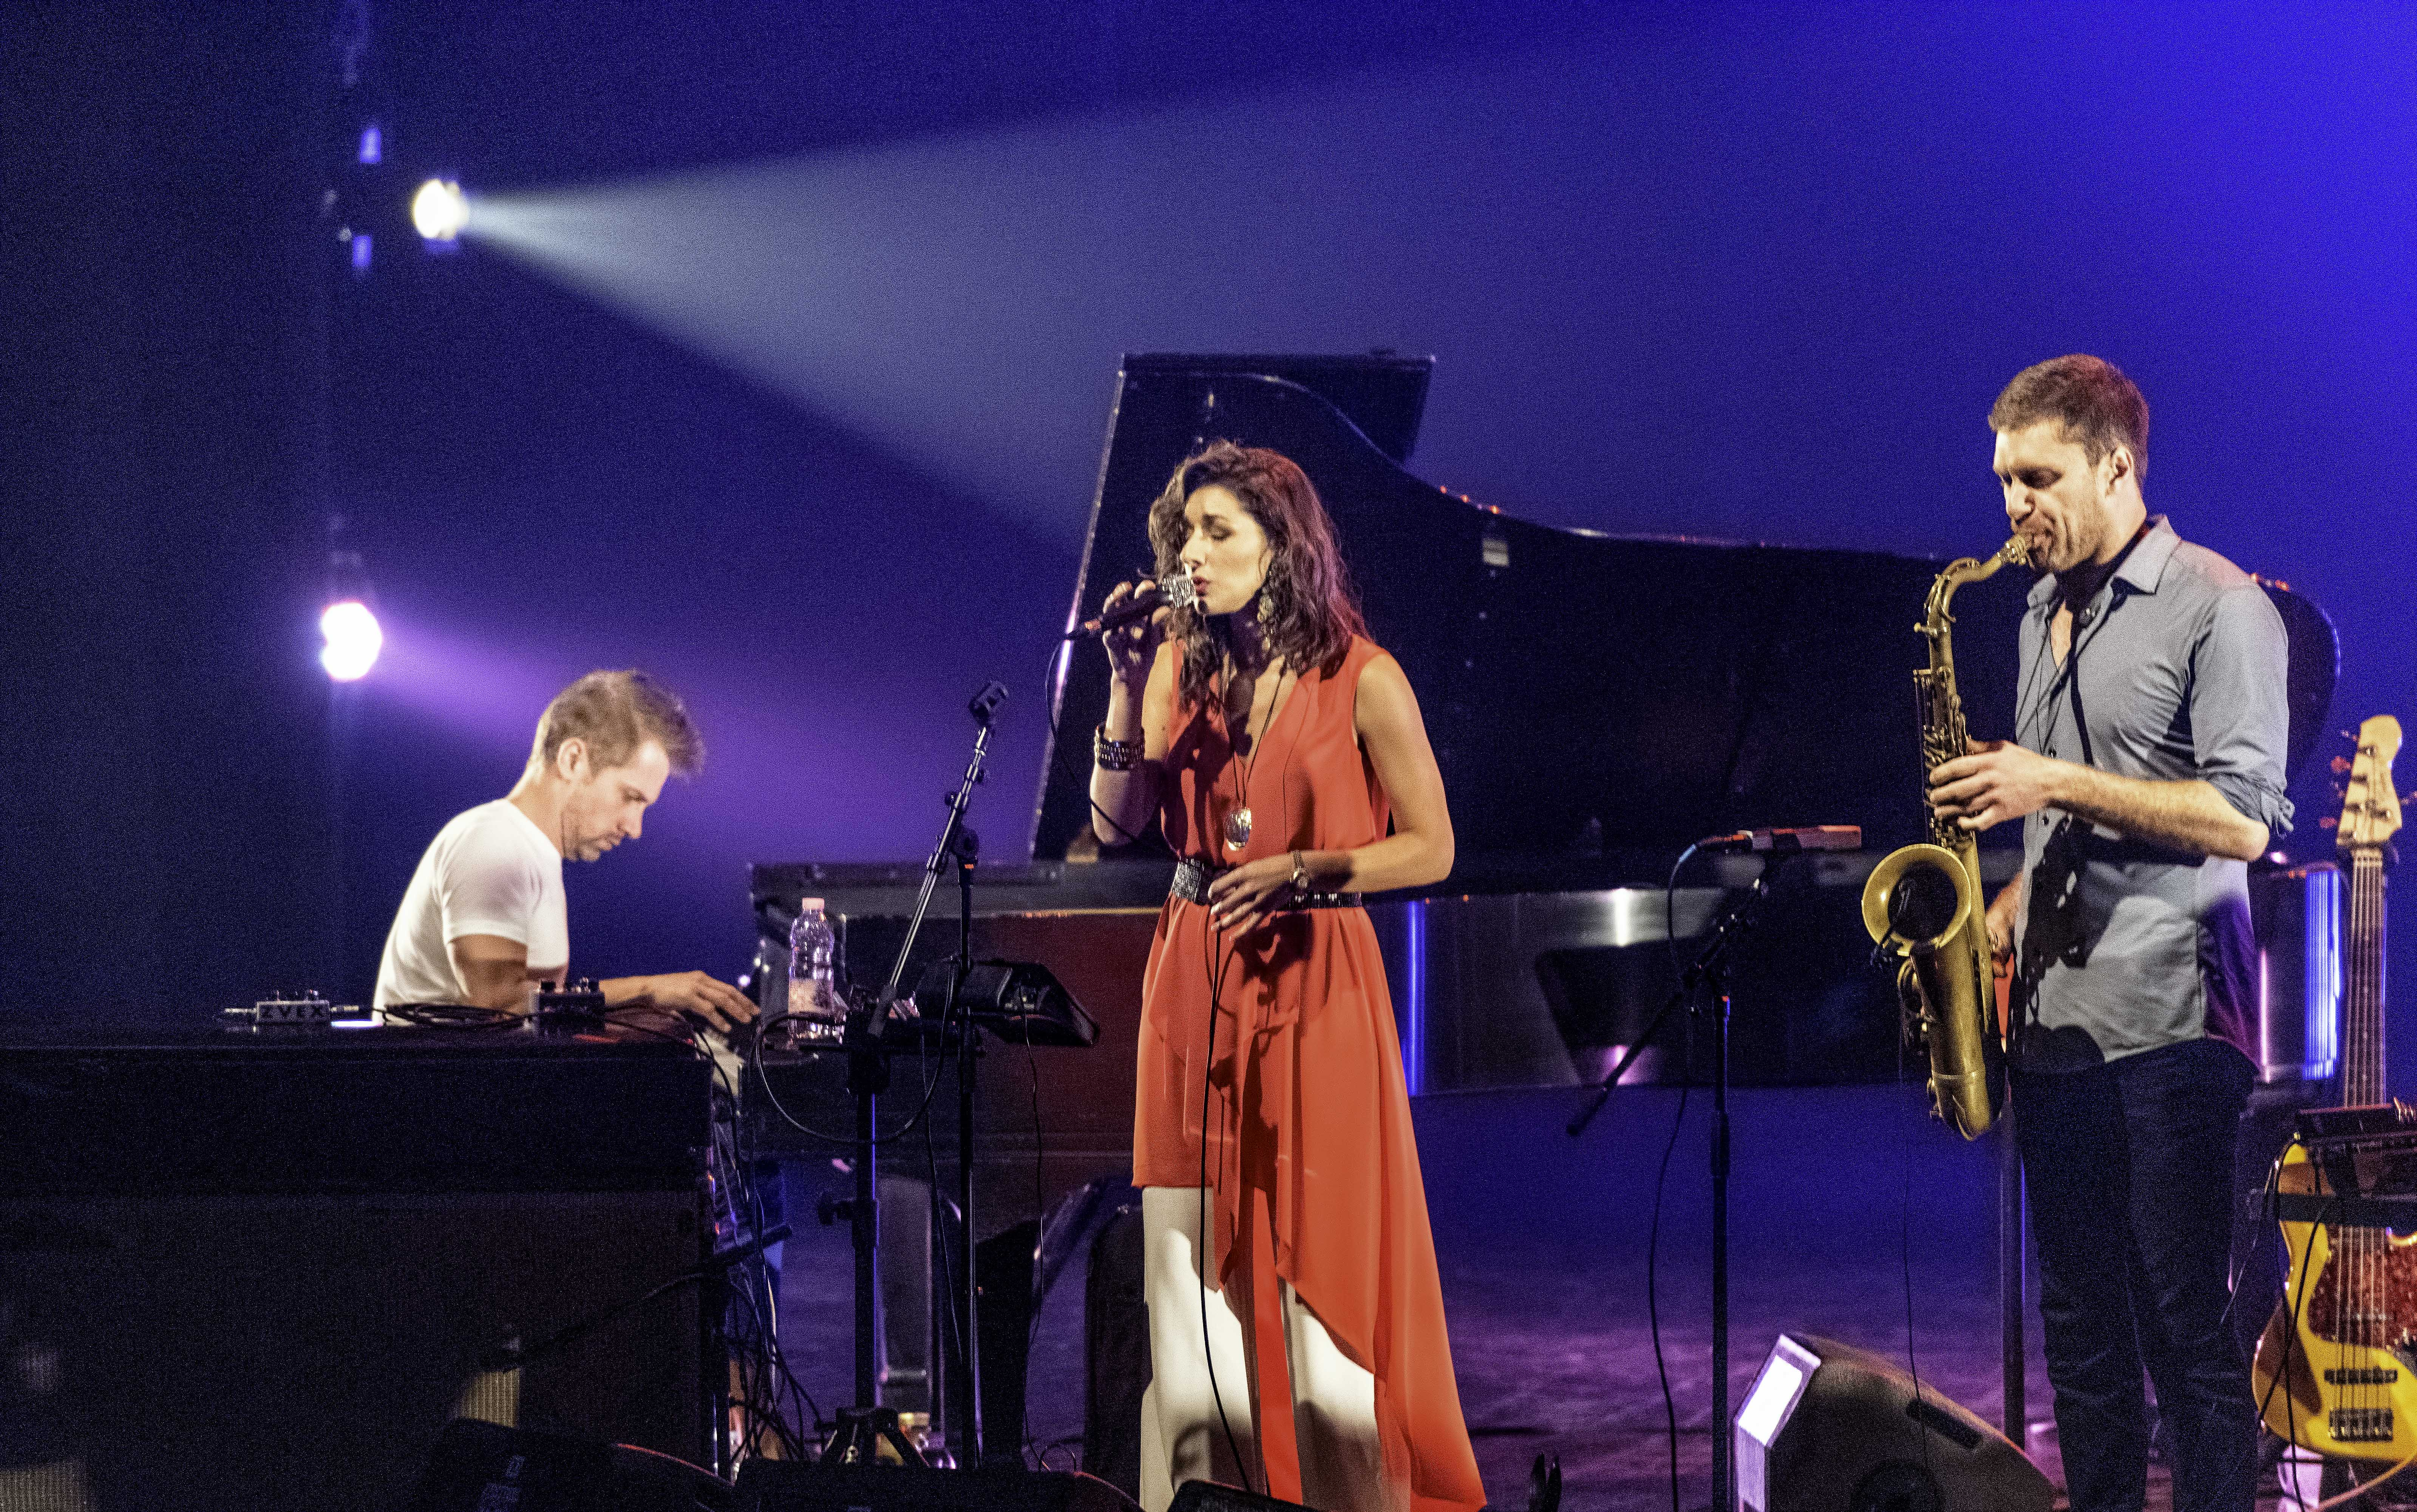 John Escreet, Thana Alexa, and Chase Baird with Antonio Sanchez and Migration At The Montreal International Jazz Festival 2019